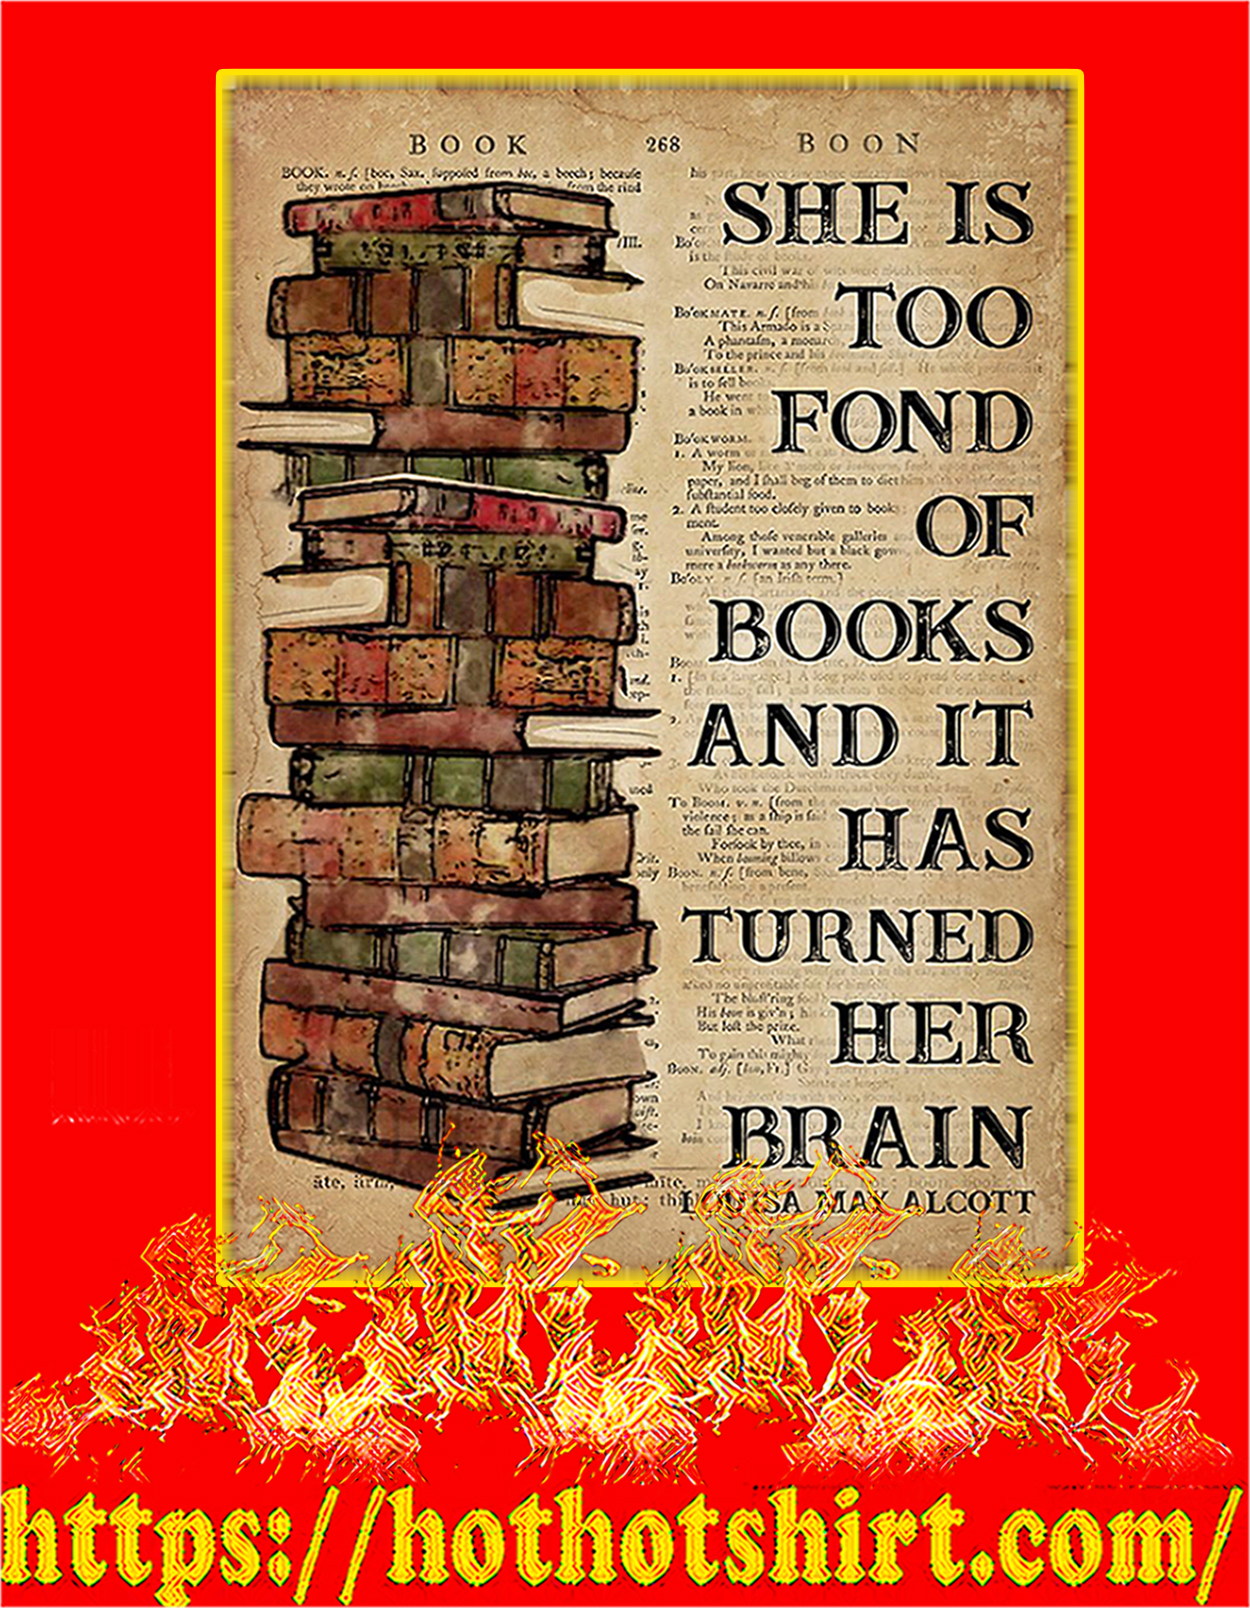 Book she is too fond of books poster - A3